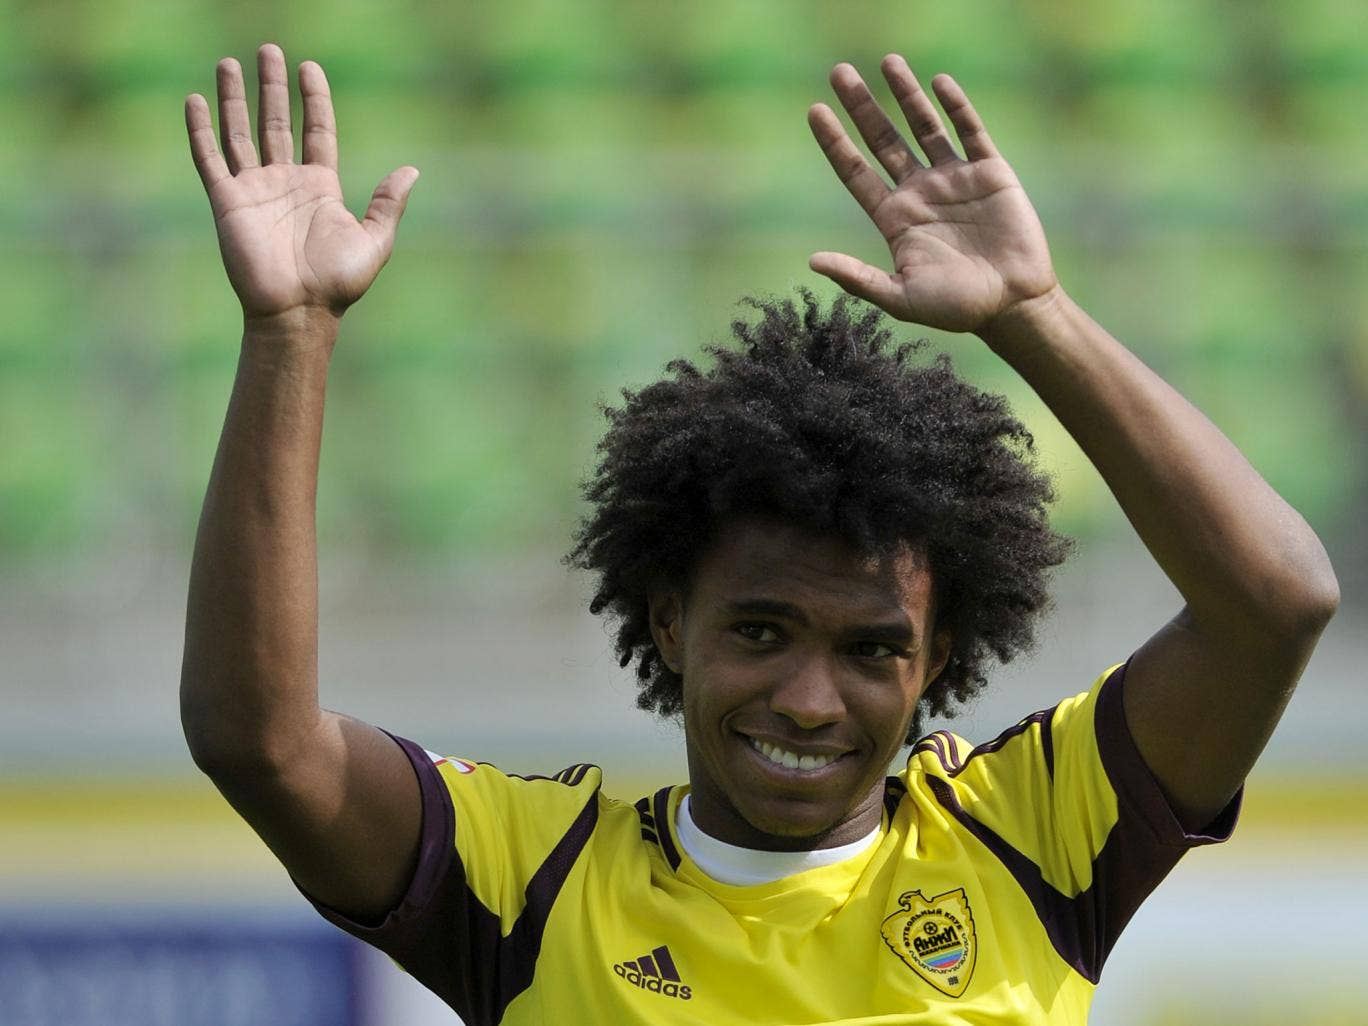 Willian is expected to sign for Chelsea after having a Spurs medical